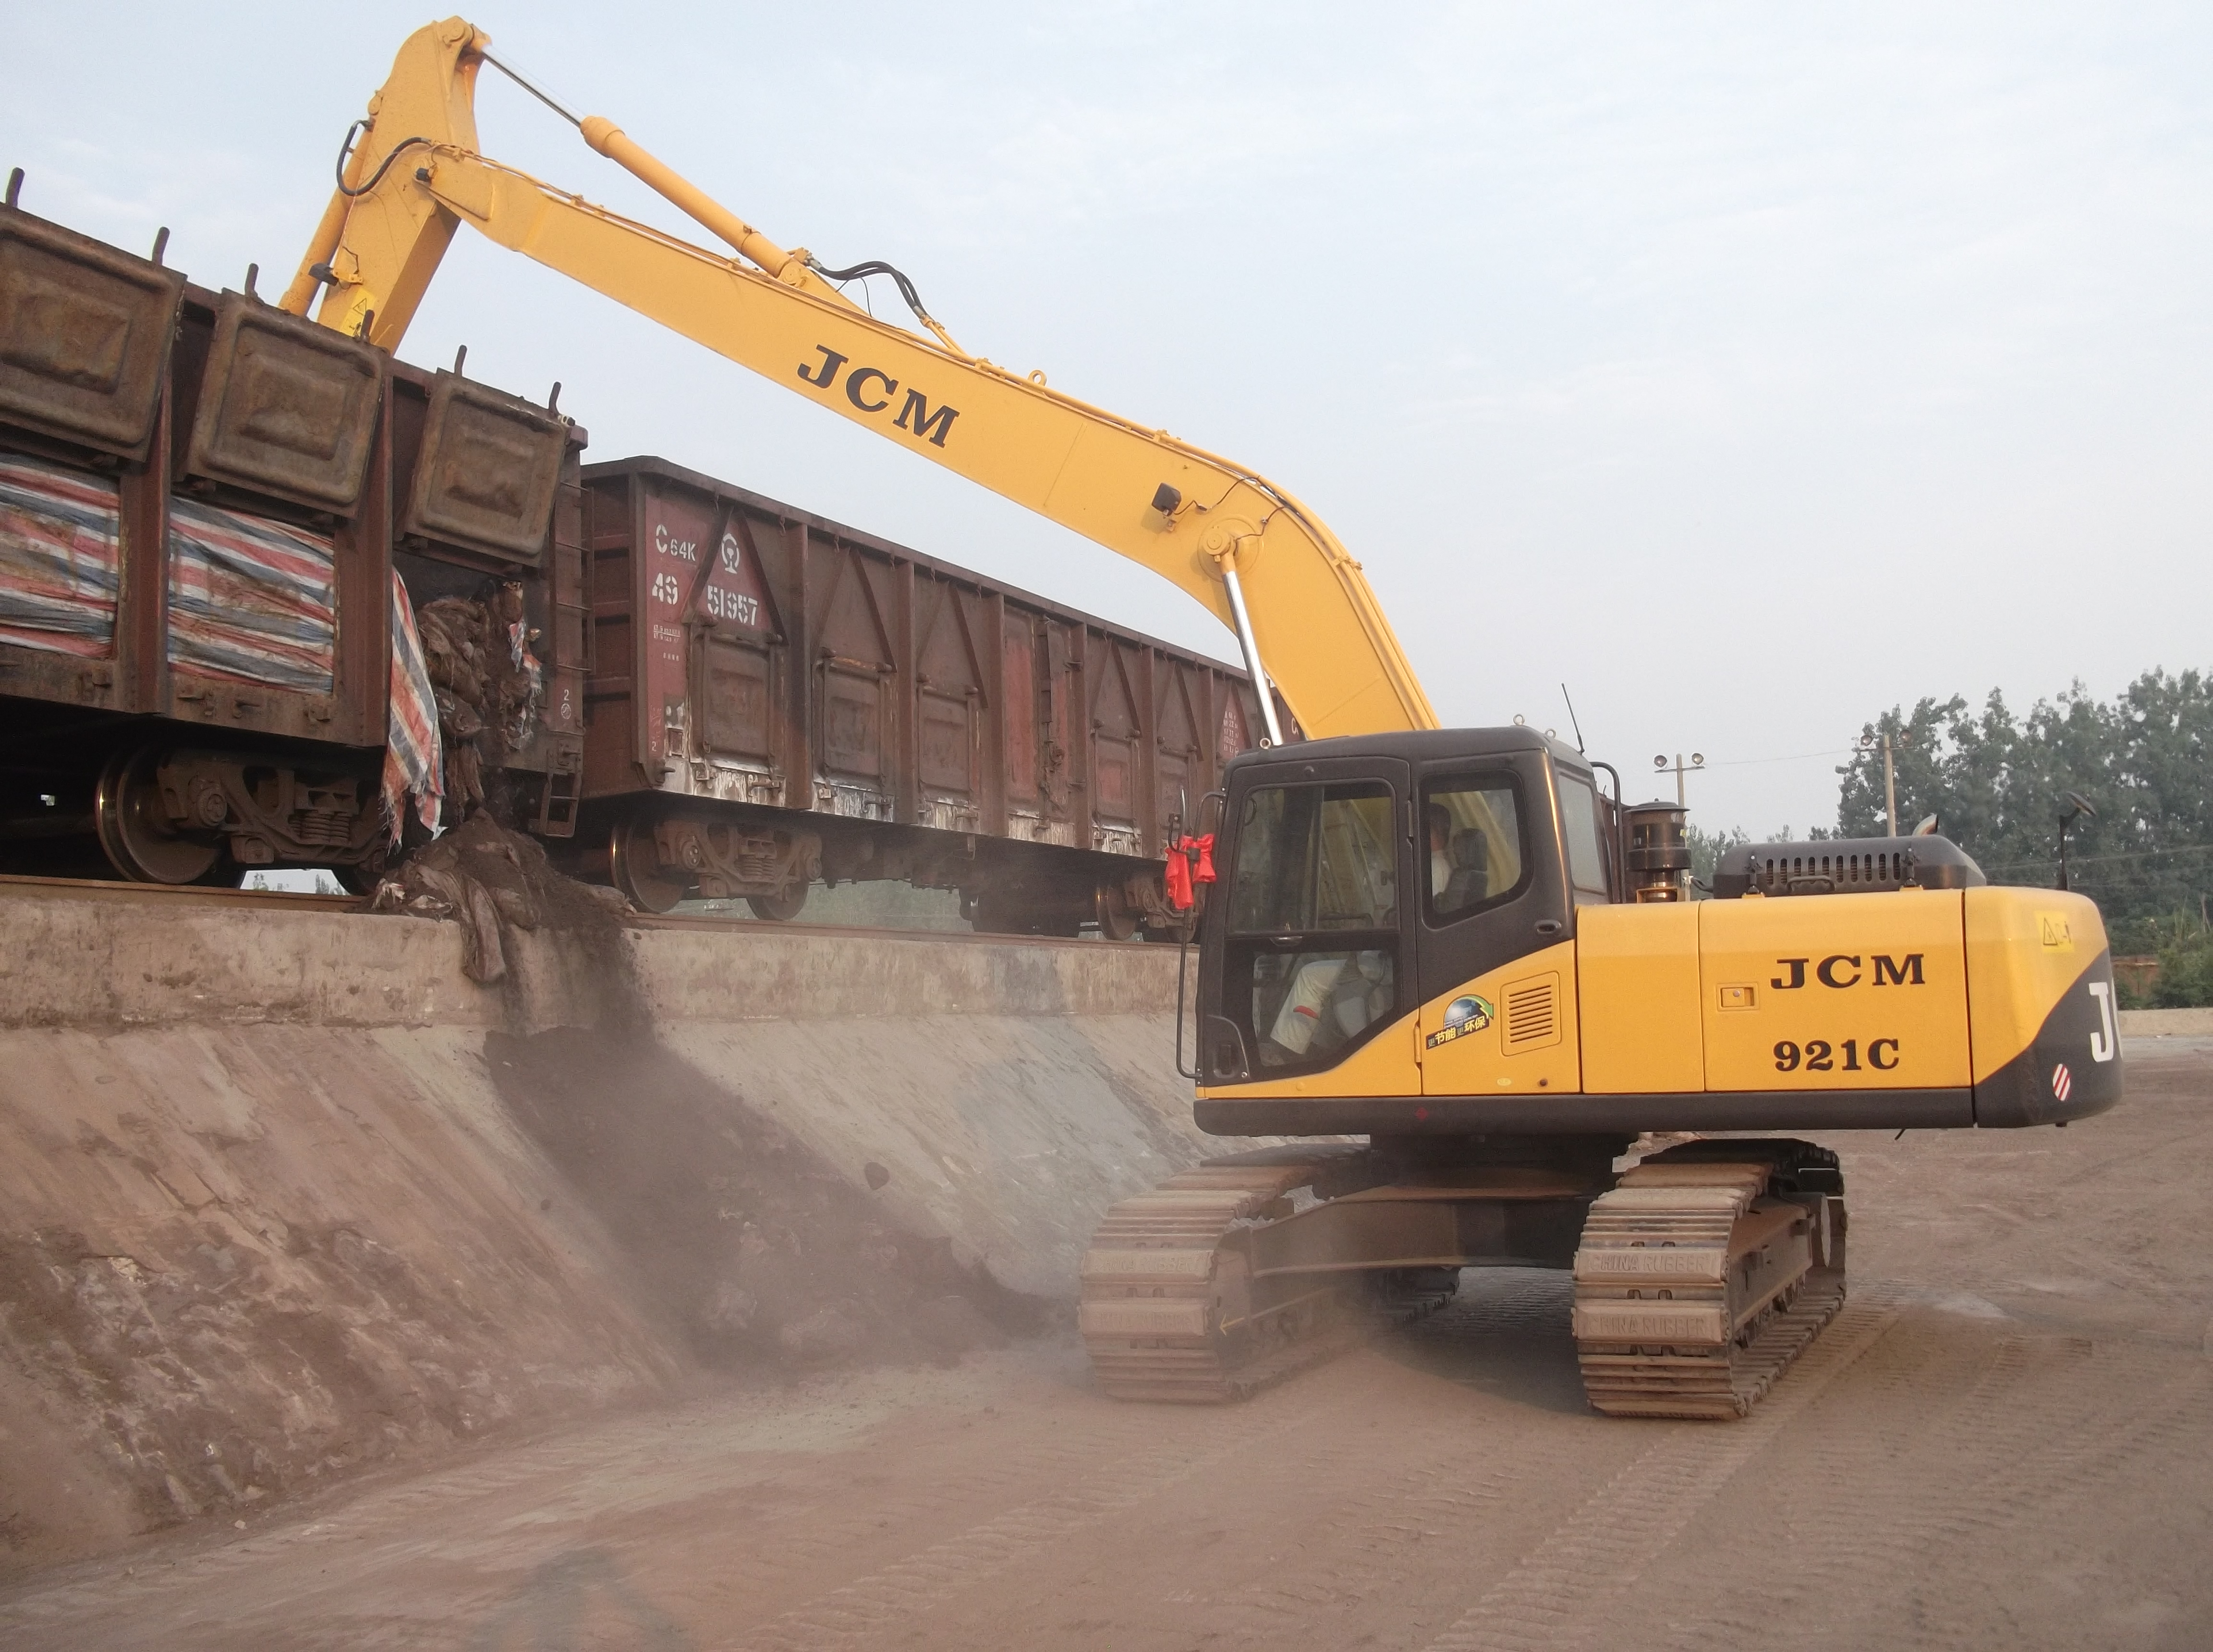 JCM921 coal unloading excavator with long boom 21 tons